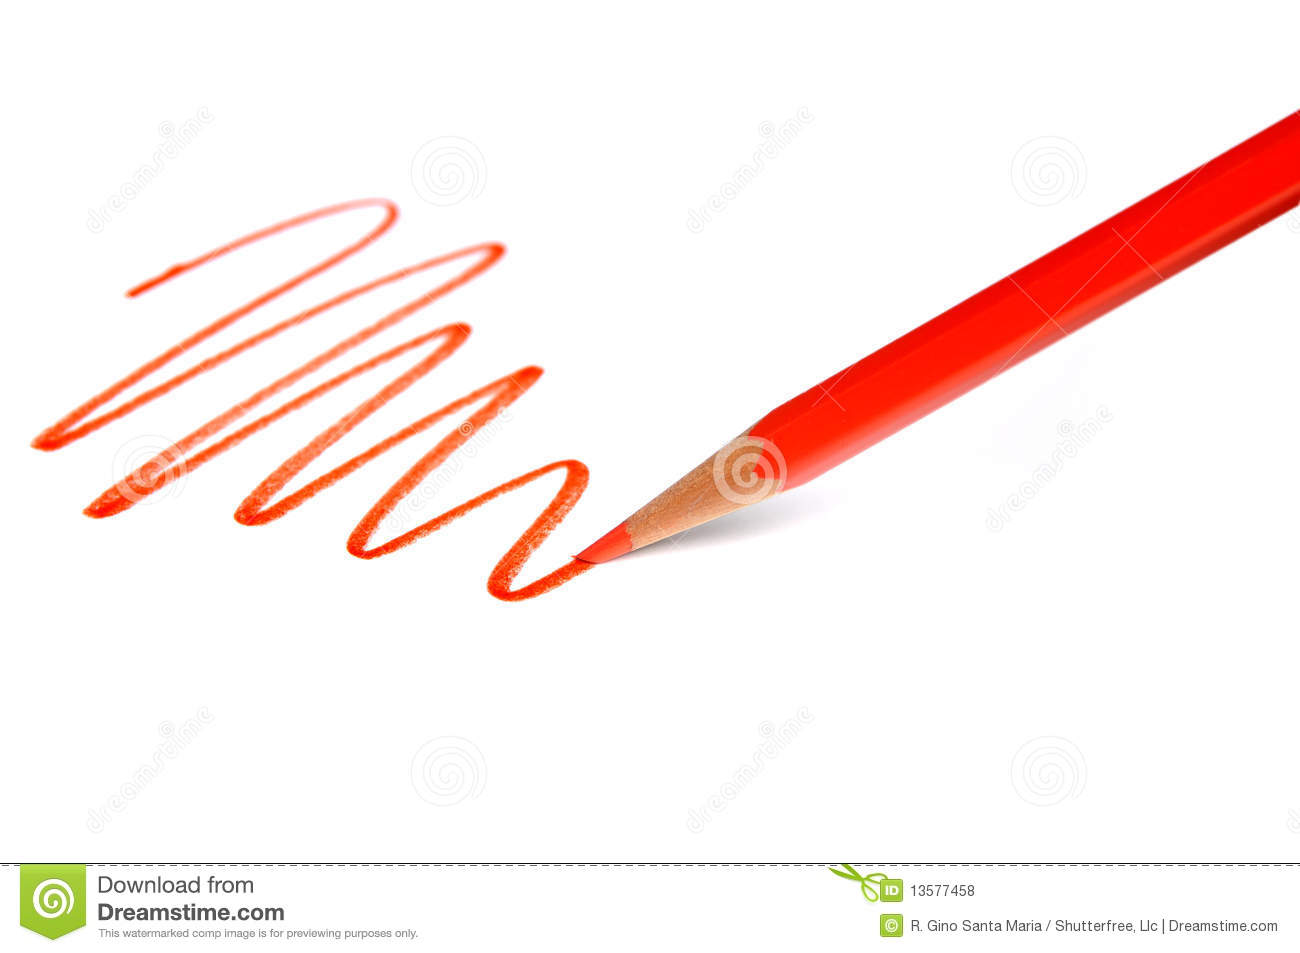 Drawing Lines With Pencil : Drawing line with red pencil royalty free stock photos